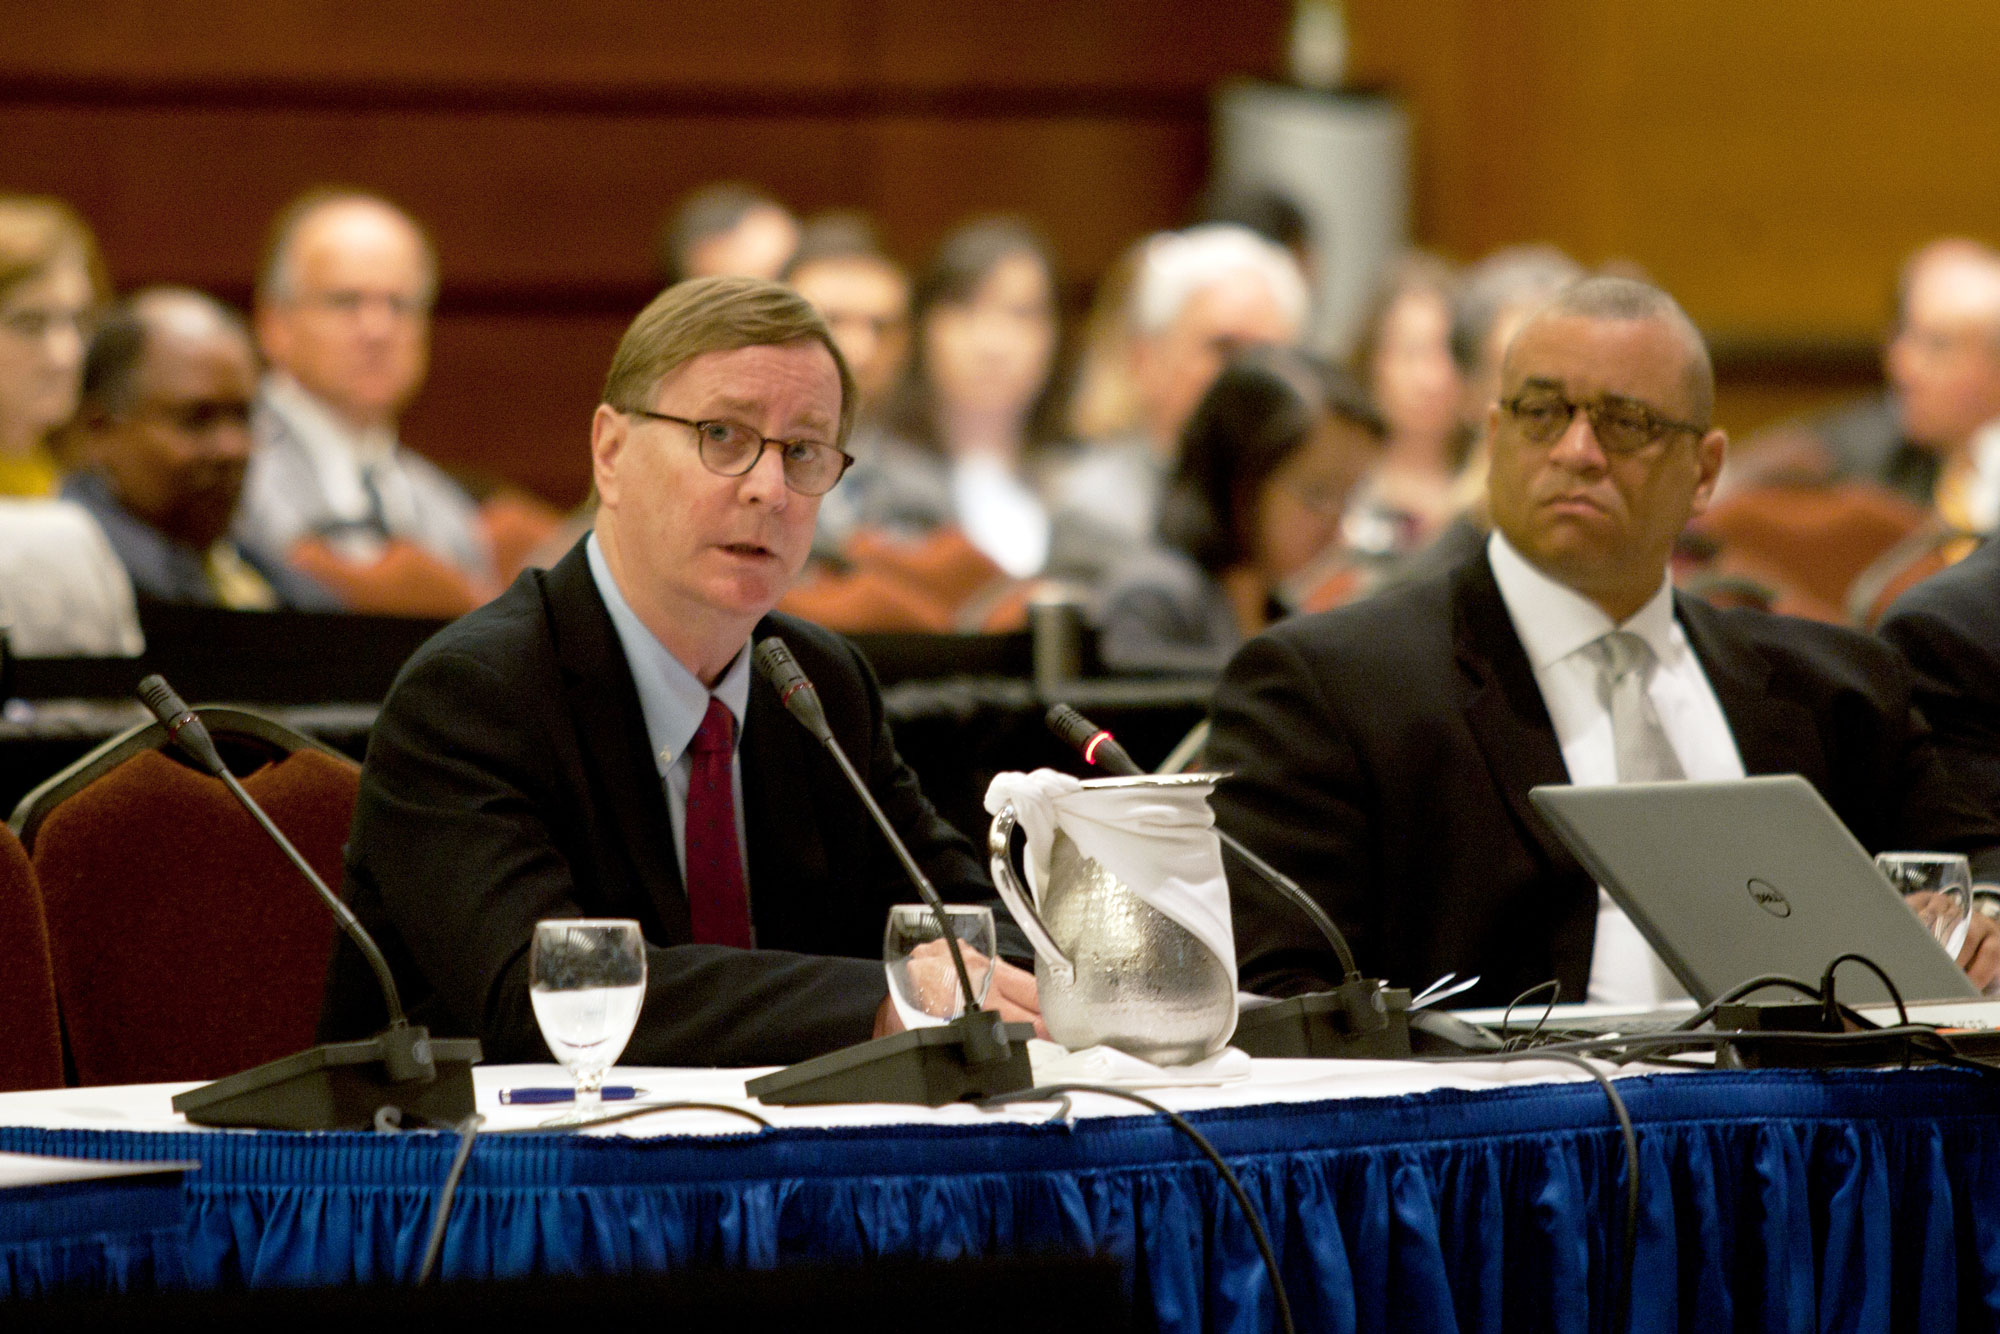 Sam Hawgood speaks during the UC Board of Regents meeting on July 17